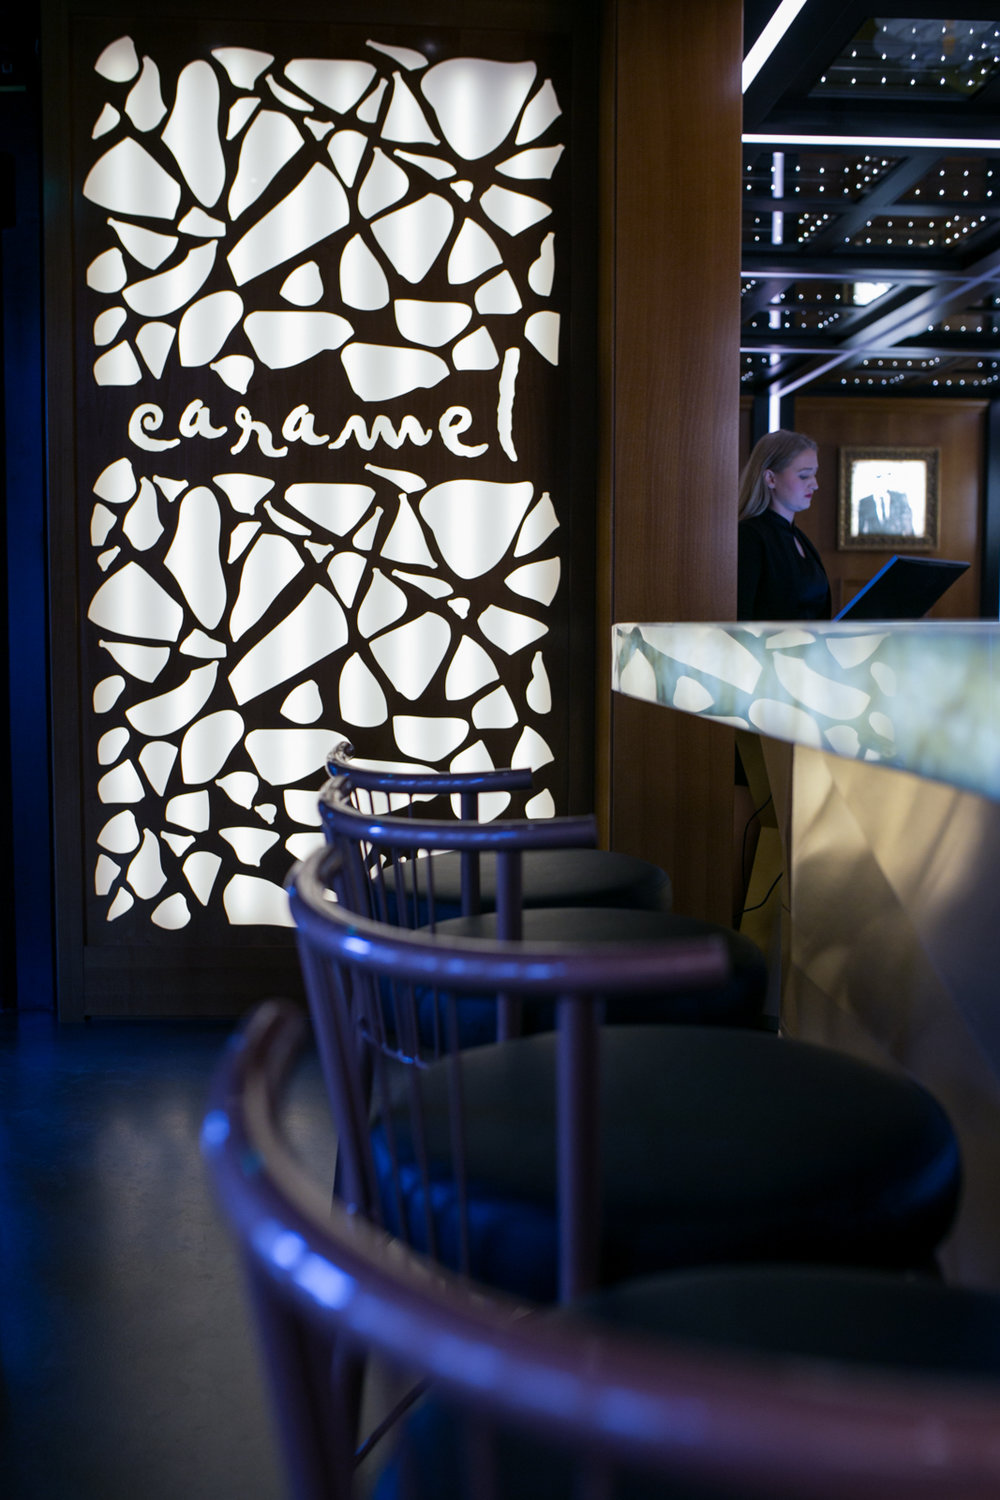 Caramel-restaurant-and-lounge-london-abu-dabi-dubai-oman-new-restaurant-in-london-minas-planet-review-jasmina-haskovic2.jpg